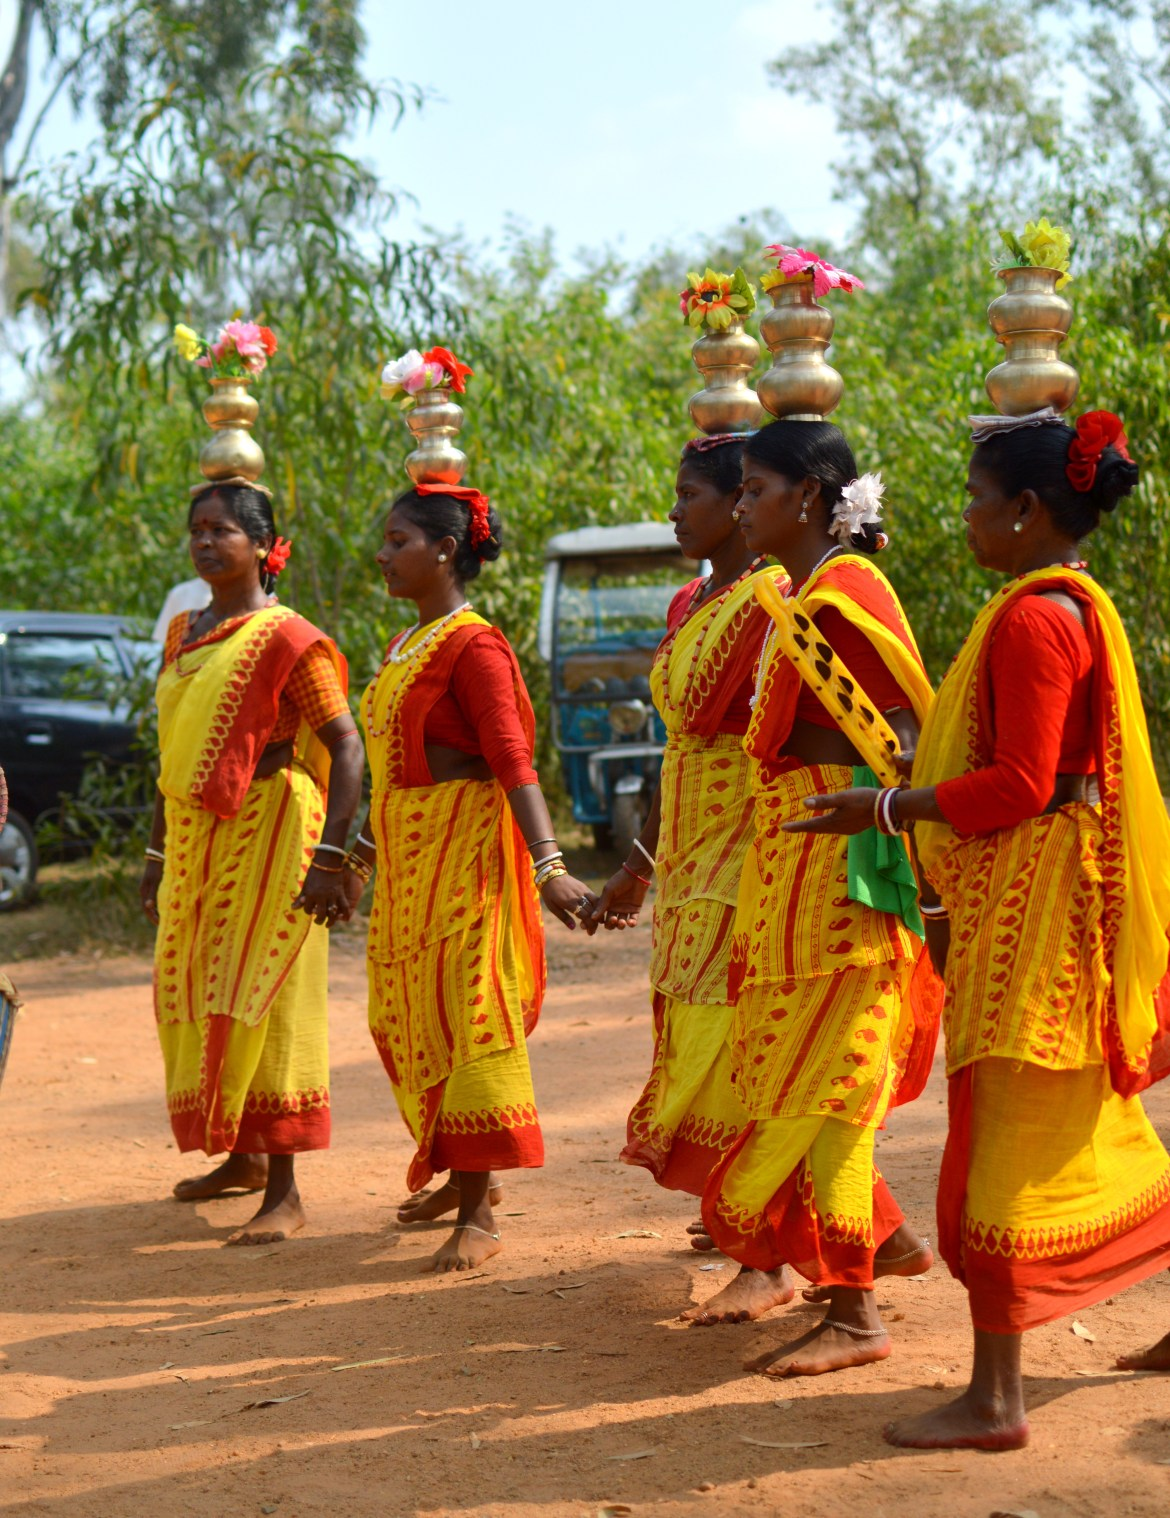 #bolpur #santiniketan + Top places for Tourist attractions in Bolpur + Santiniketan